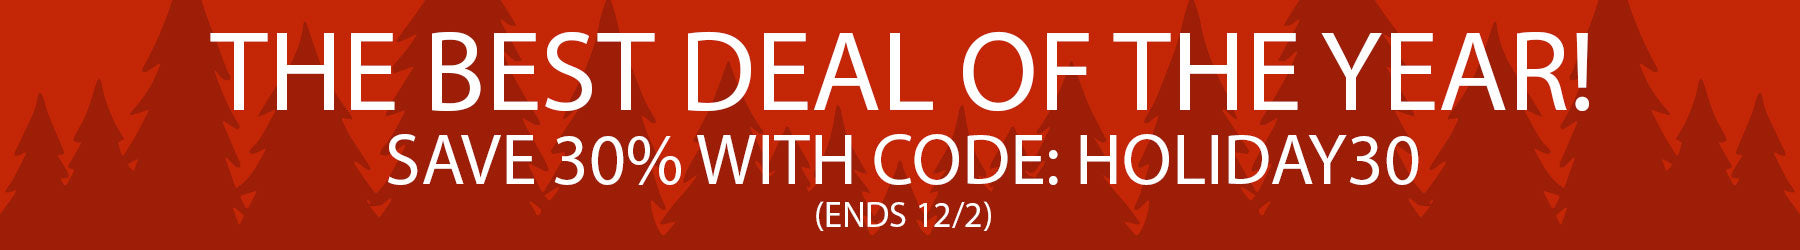 Our best deal of the year! 30% off with code: HOLIDAY30